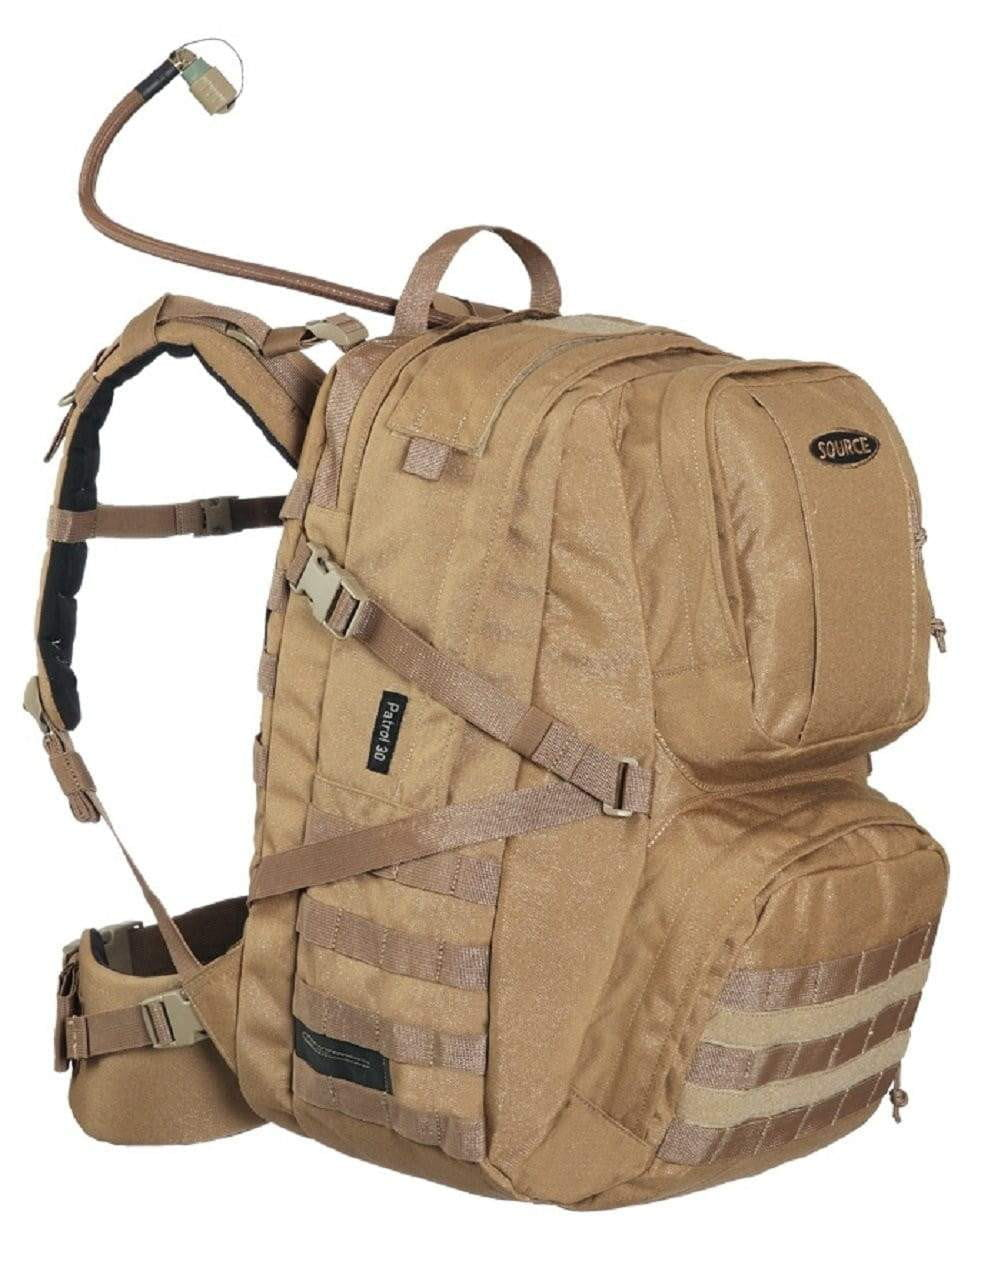 Source Hydration-Backpack Patrol Pack - CHK-SHIELD | Outdoor Army - Tactical Gear Shop